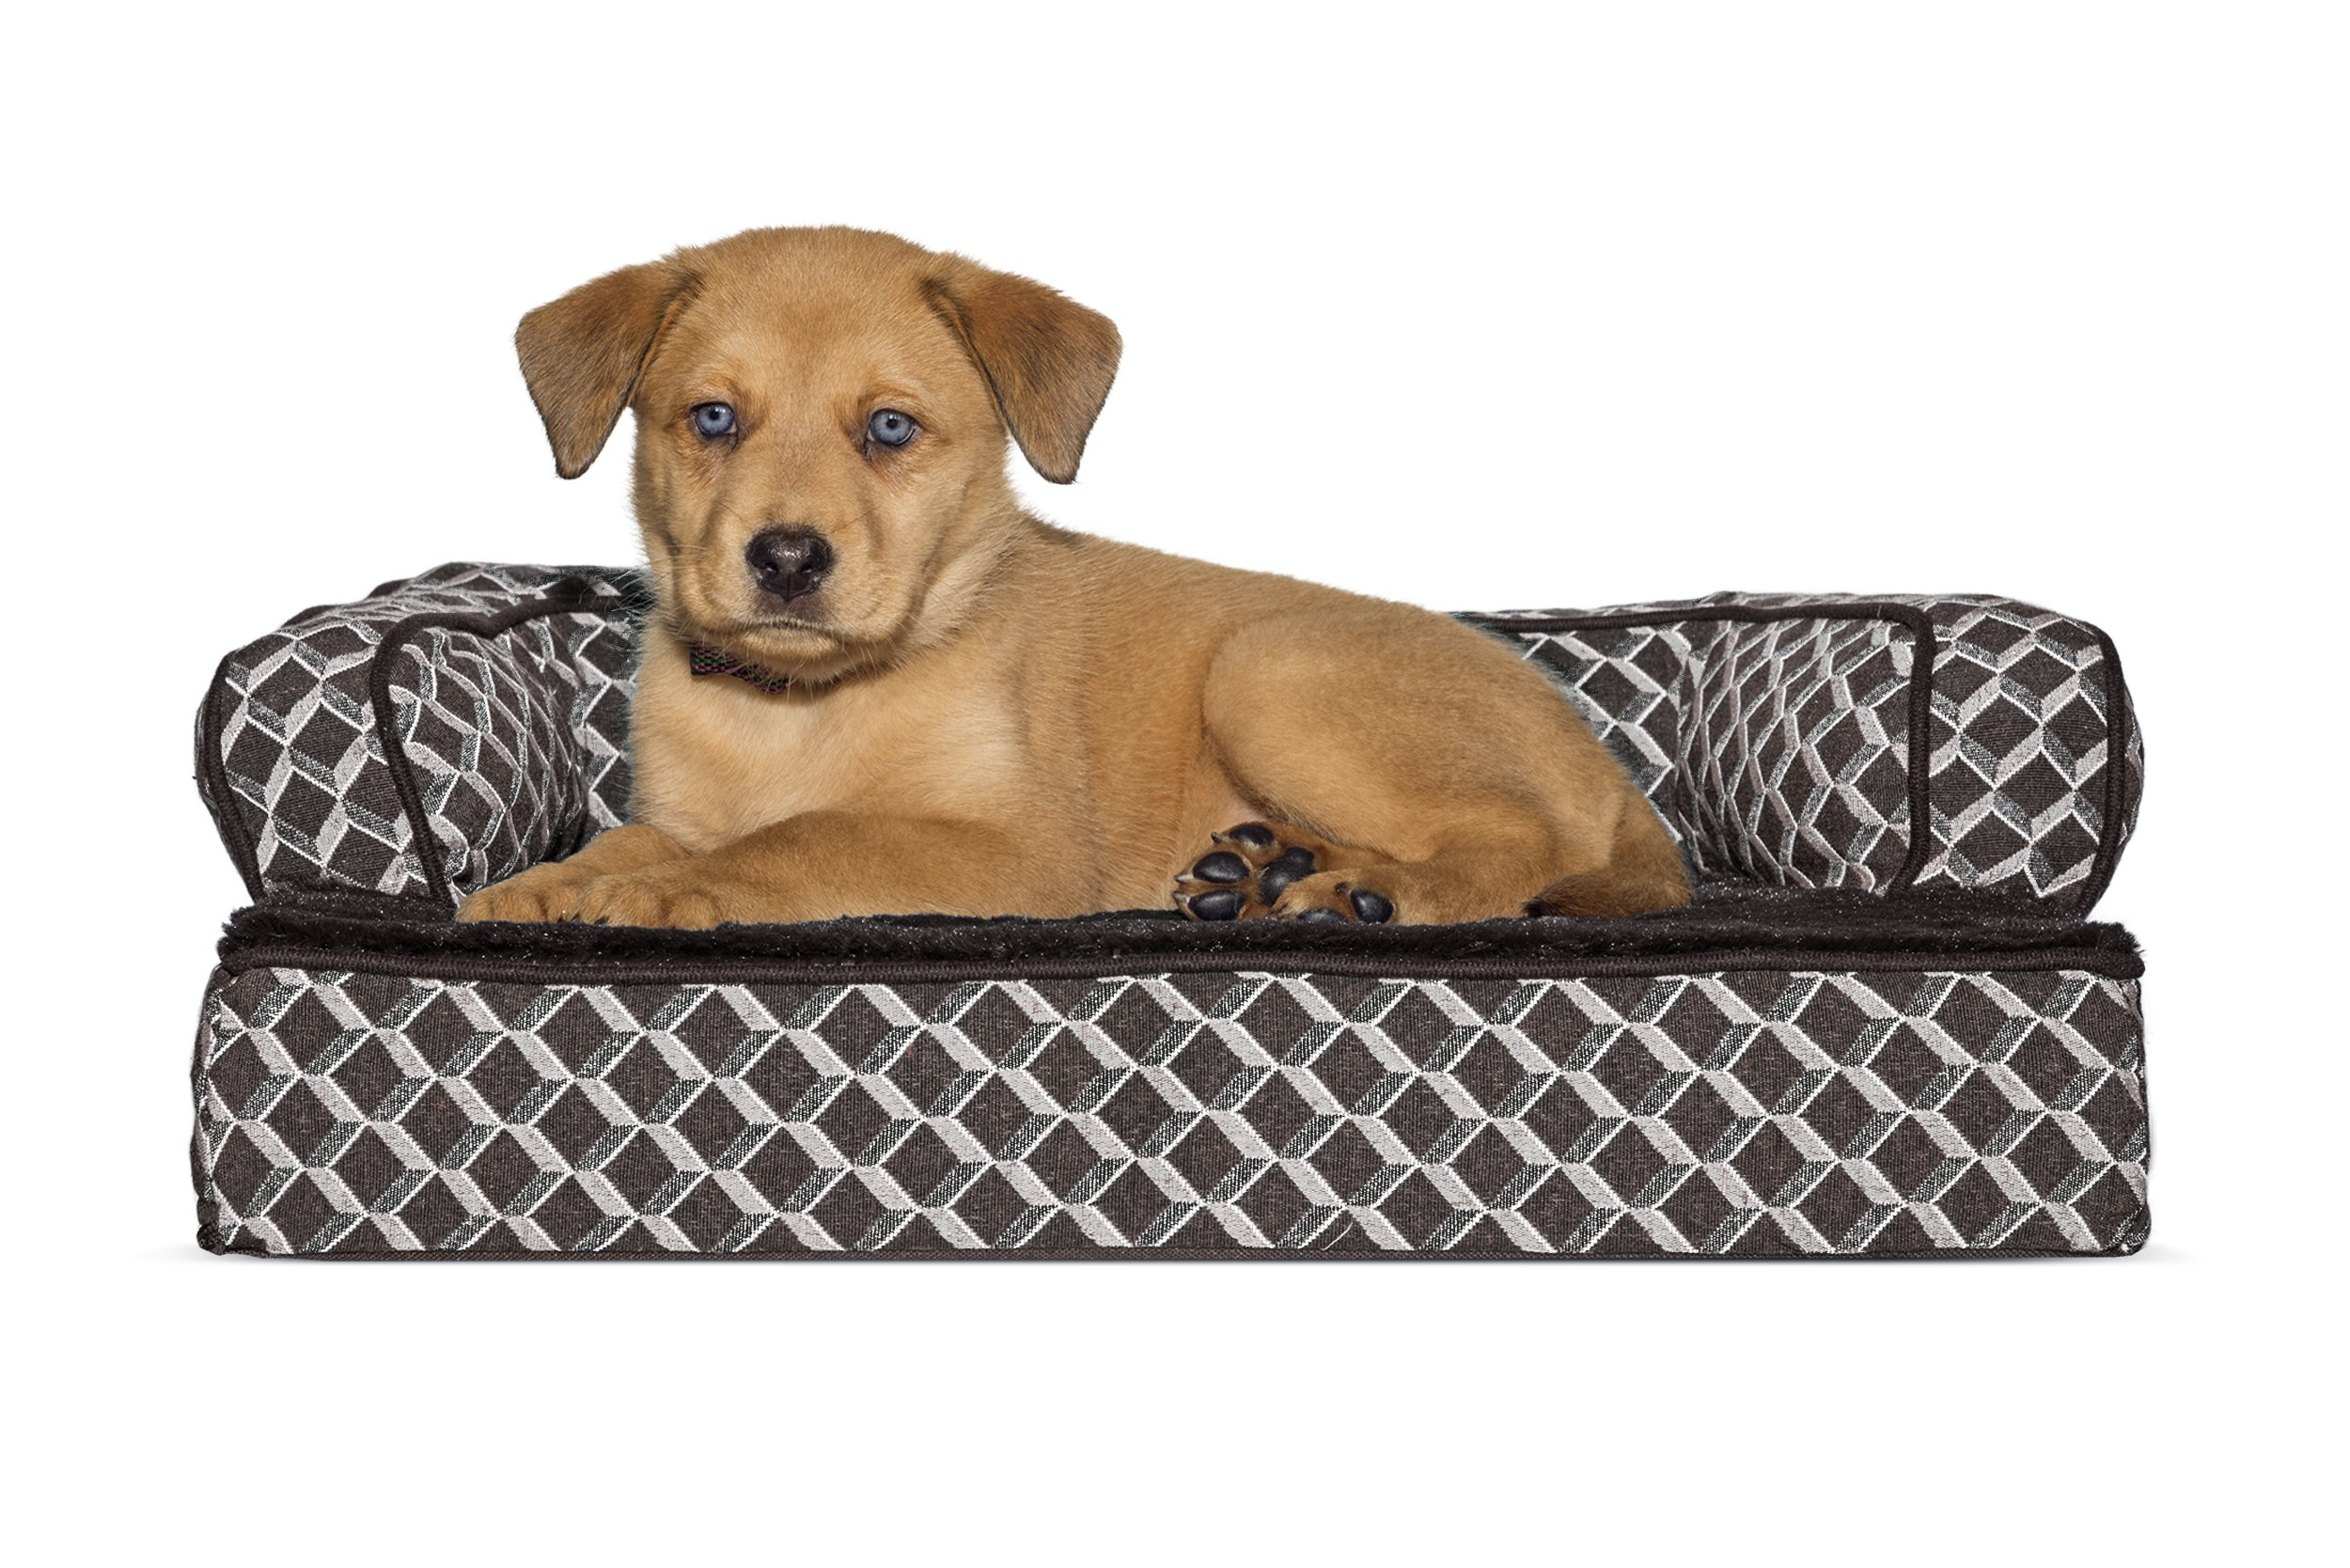 FurHaven Plush & Decor Orthopedic Comfy Couch Sofa-Style Pet Bed, Small, Diamond Brown